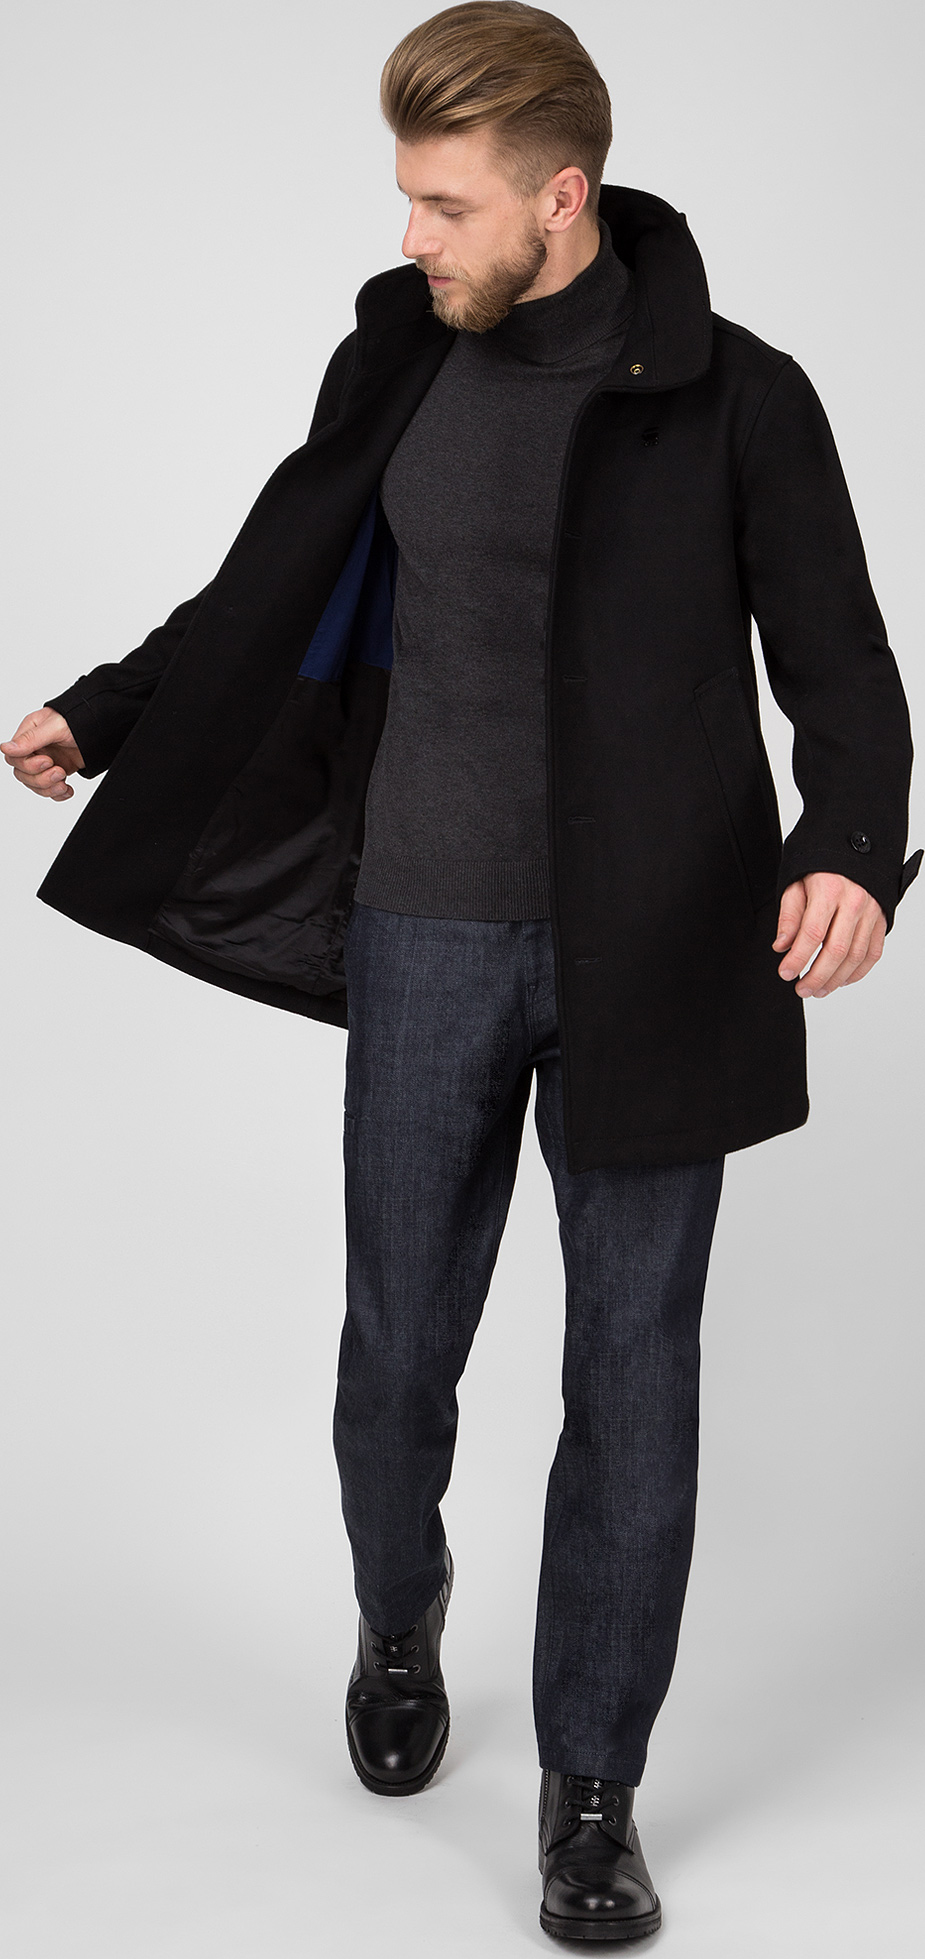 Пальто G-Star RAW Garber empral wool trench D10295.9168.6484 M Черное  (8719764173685 7cc66e14c6307